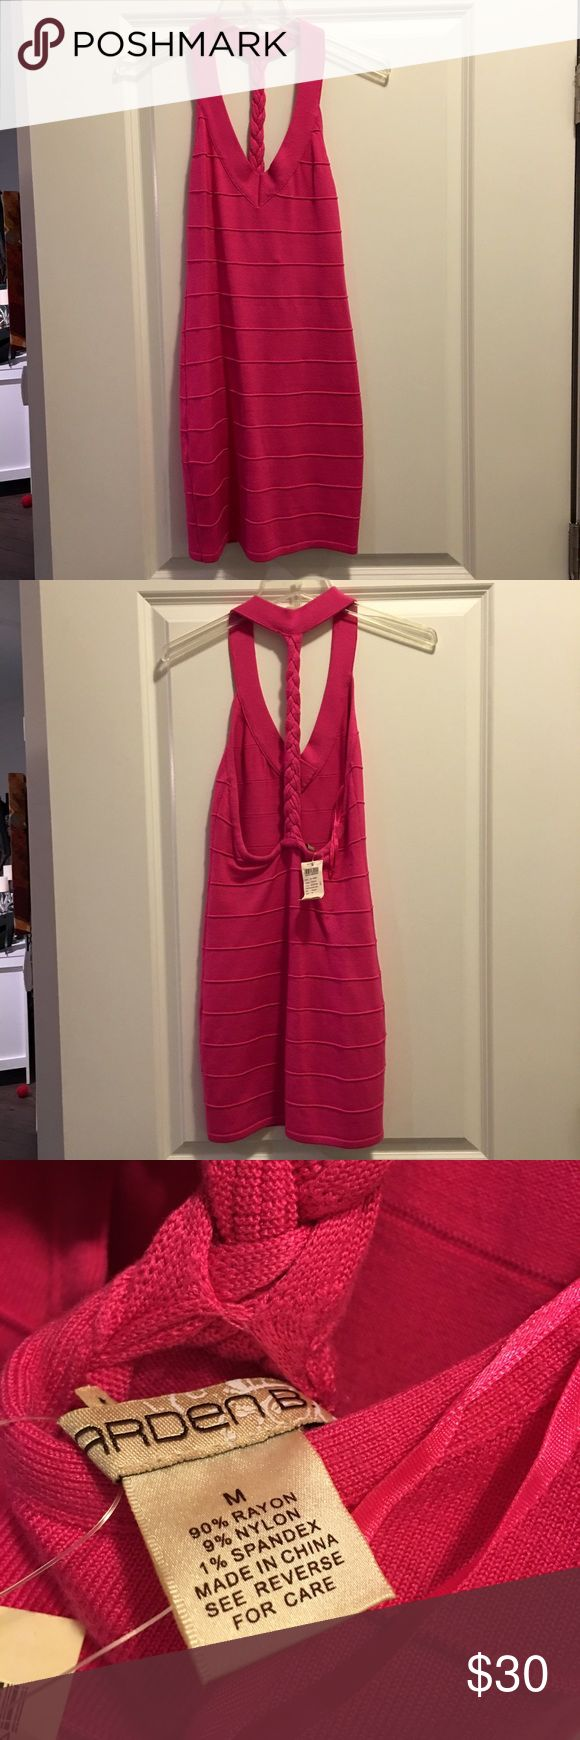 NWT Arden B Bandage Dress NWT. Pink bandage dress. Great to wear on a night out. Arden B Dresses Mini